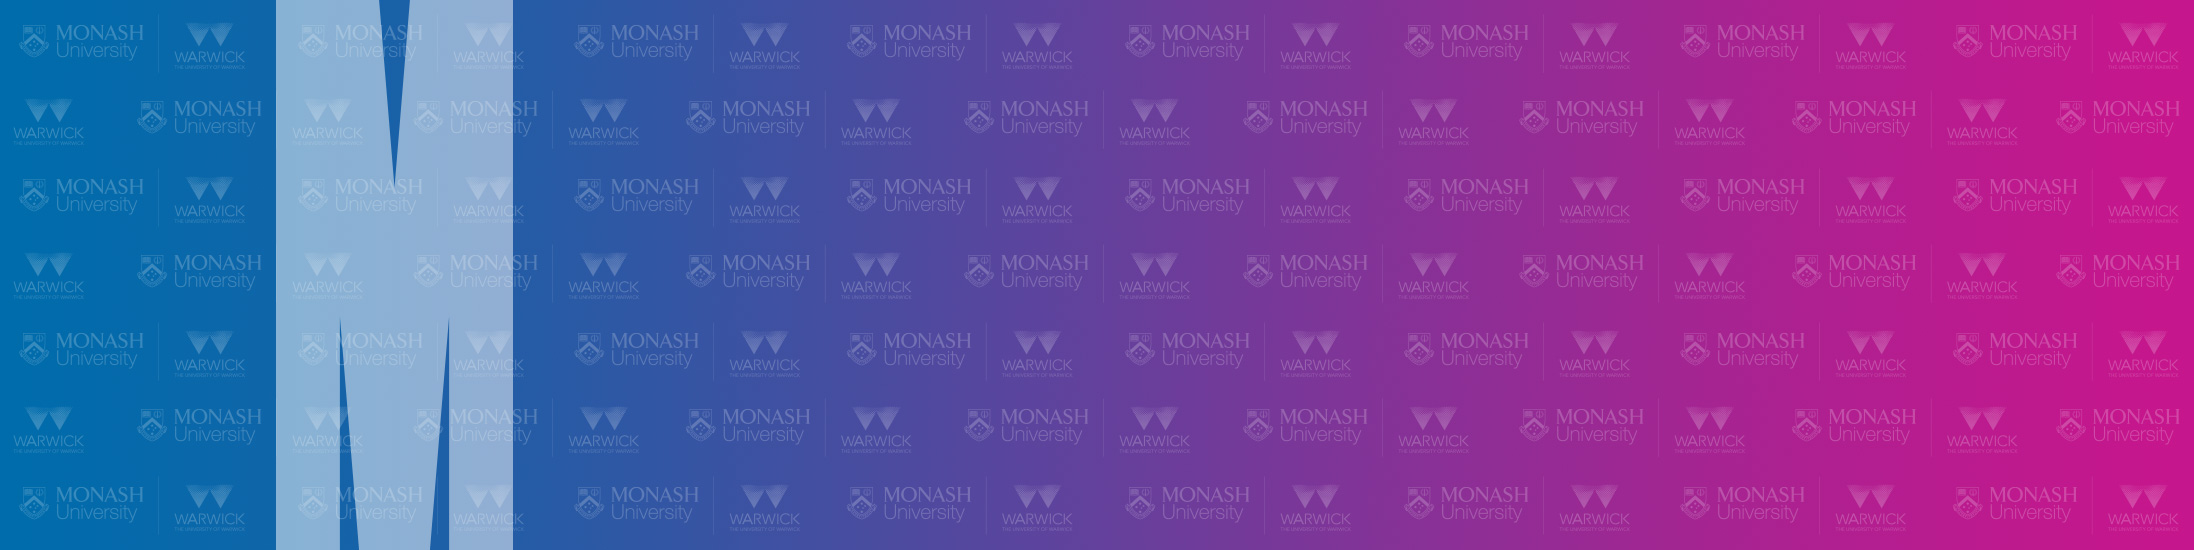 Monash-Warwick joint PhD and scholarship